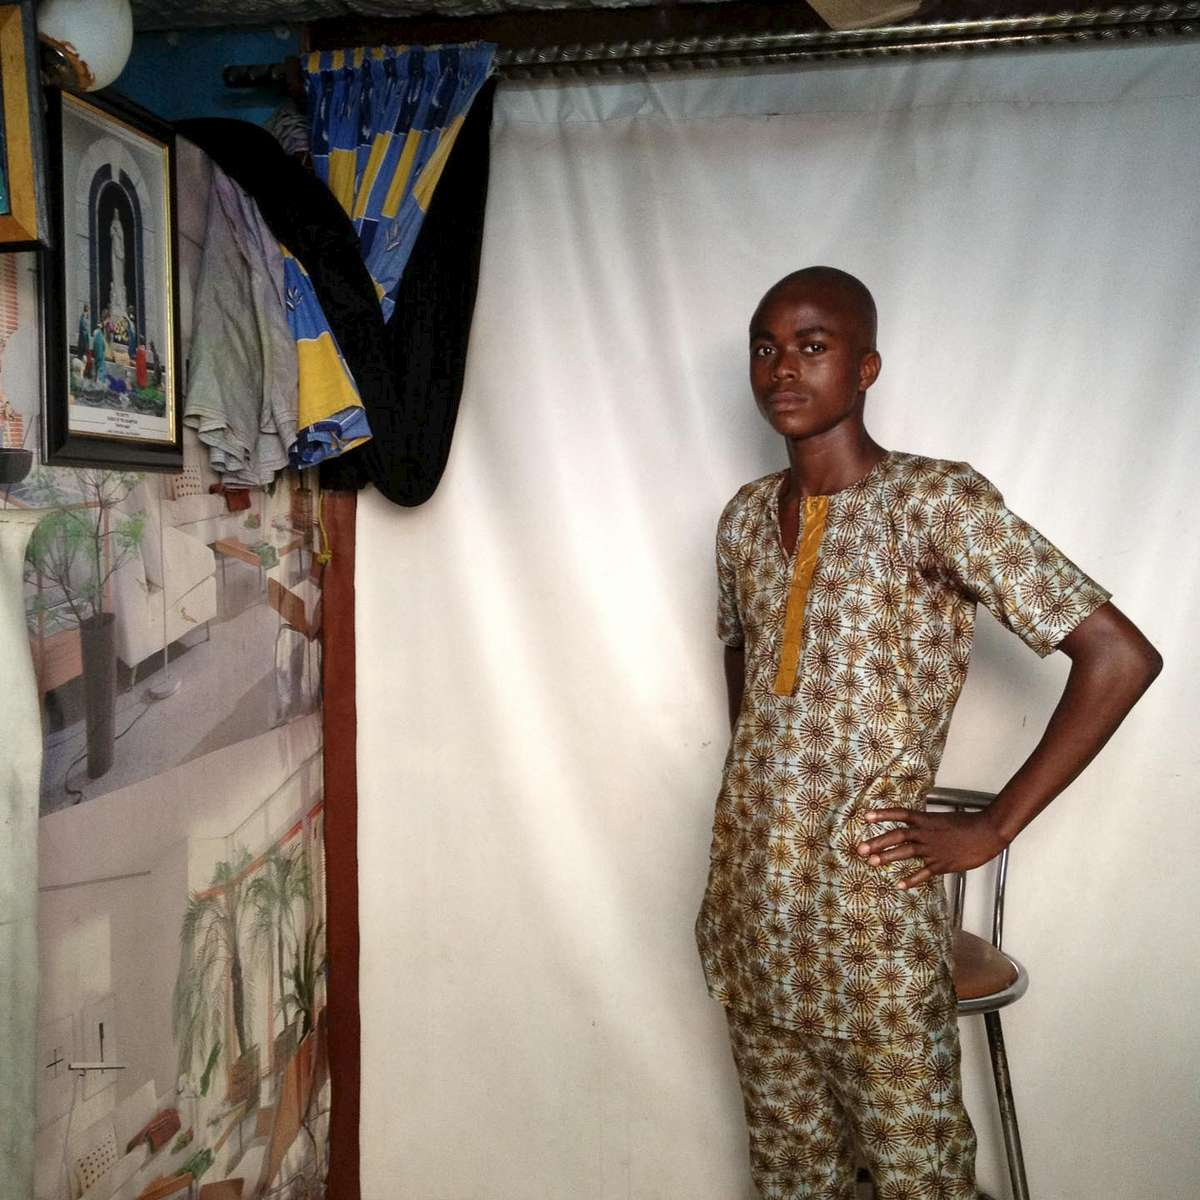 A man gets his portrait taken at Sammy\'s Photo Studio in Obalende, a transit hub in Lagos, Nigeria on January 4.